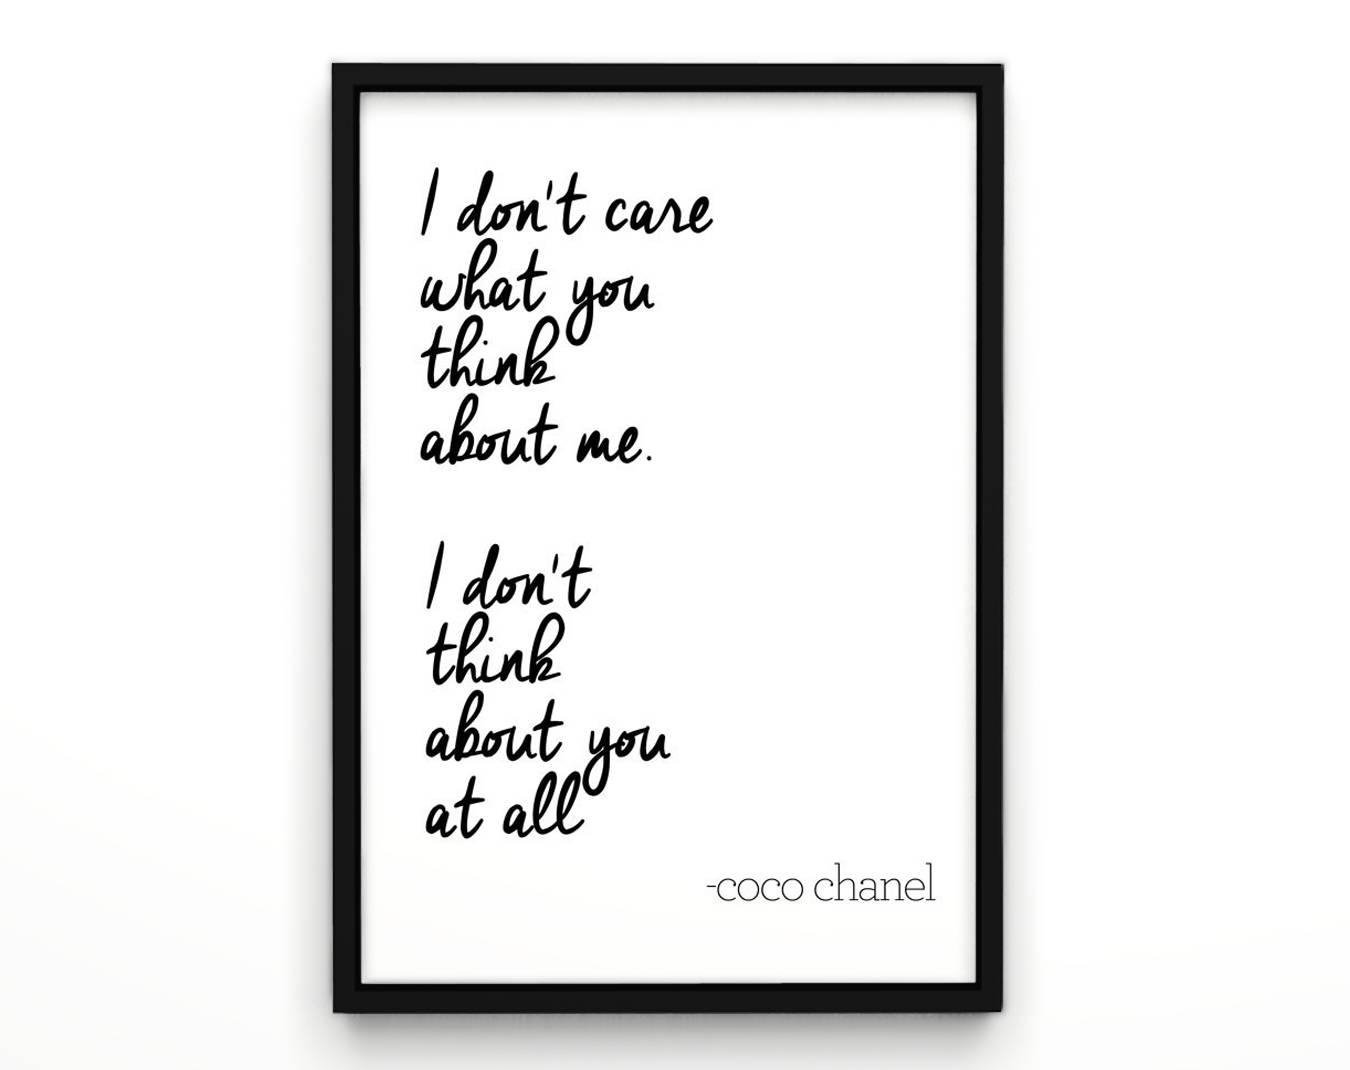 Coco Chanel Quotes Chanel Poster Wall Decor Inspirational Inside Chanel Wall Decor (Image 9 of 20)